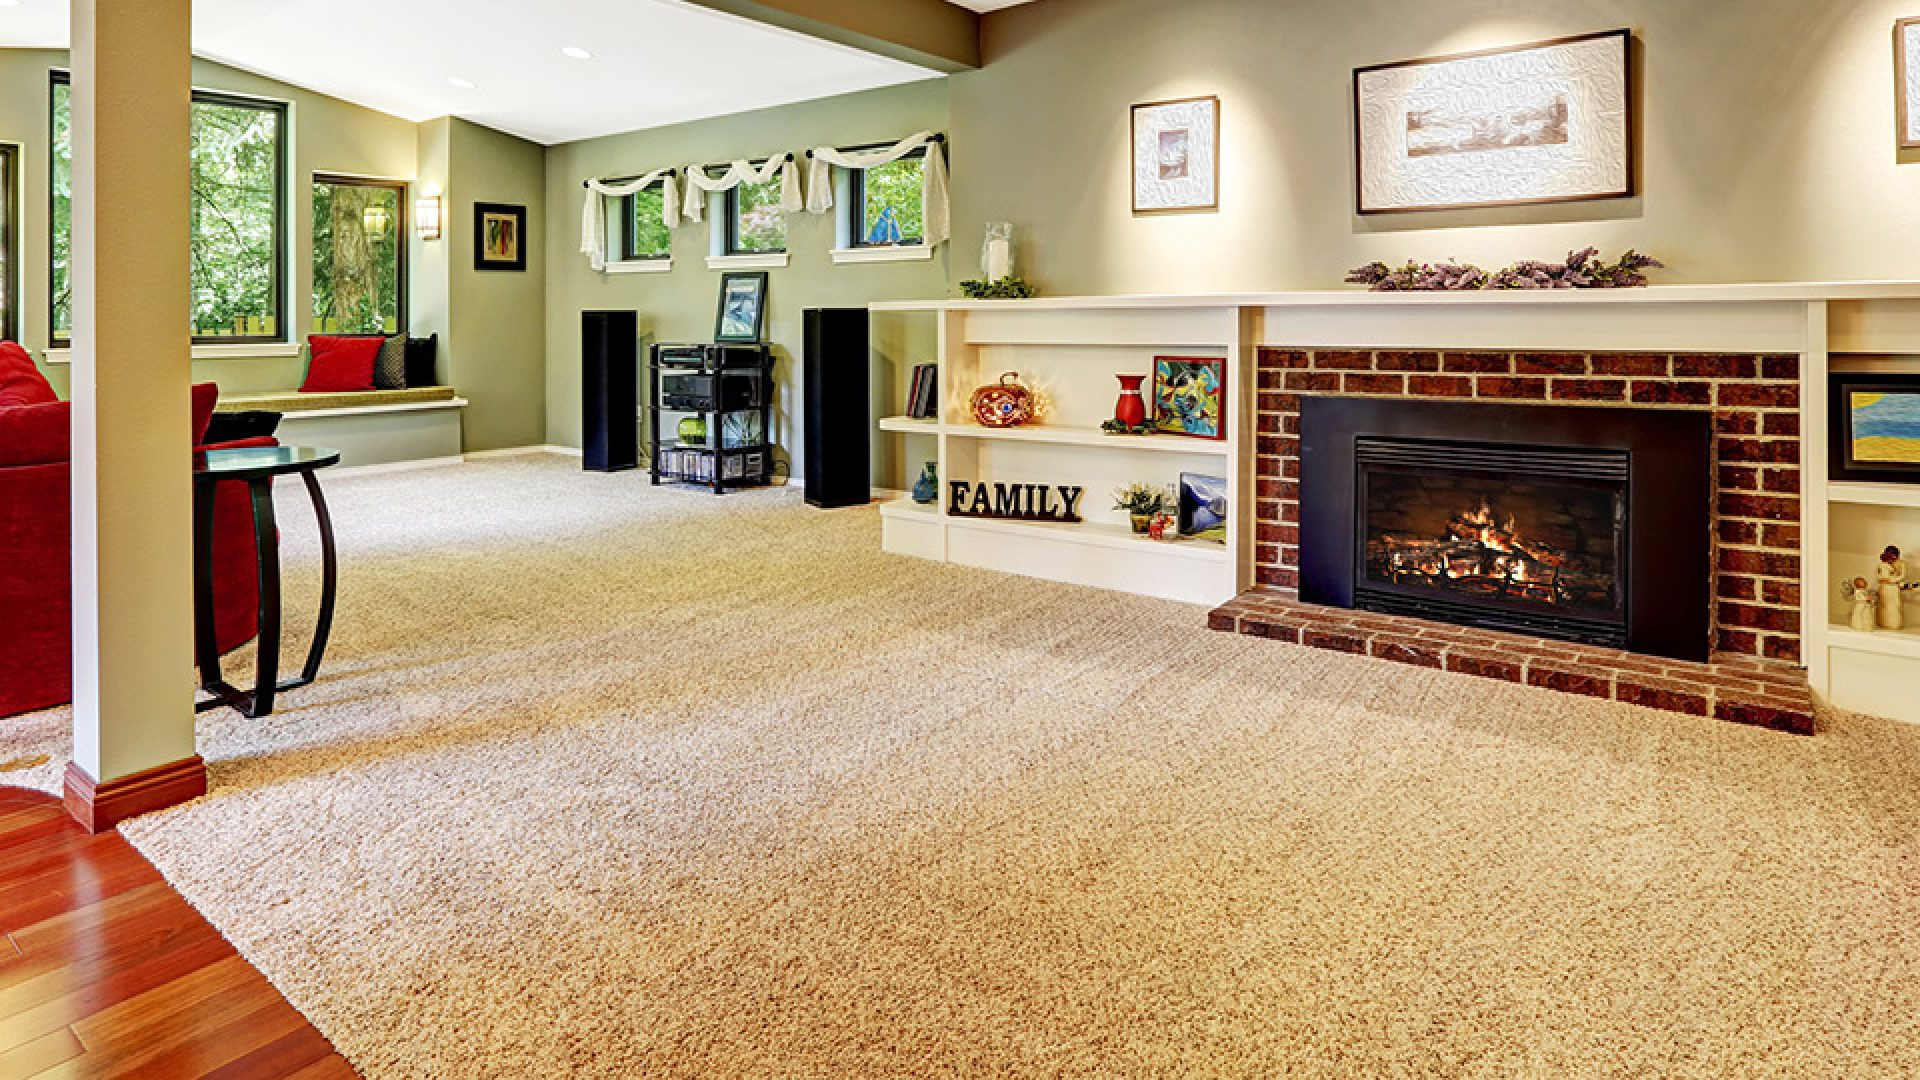 918 CARPET CLEANING